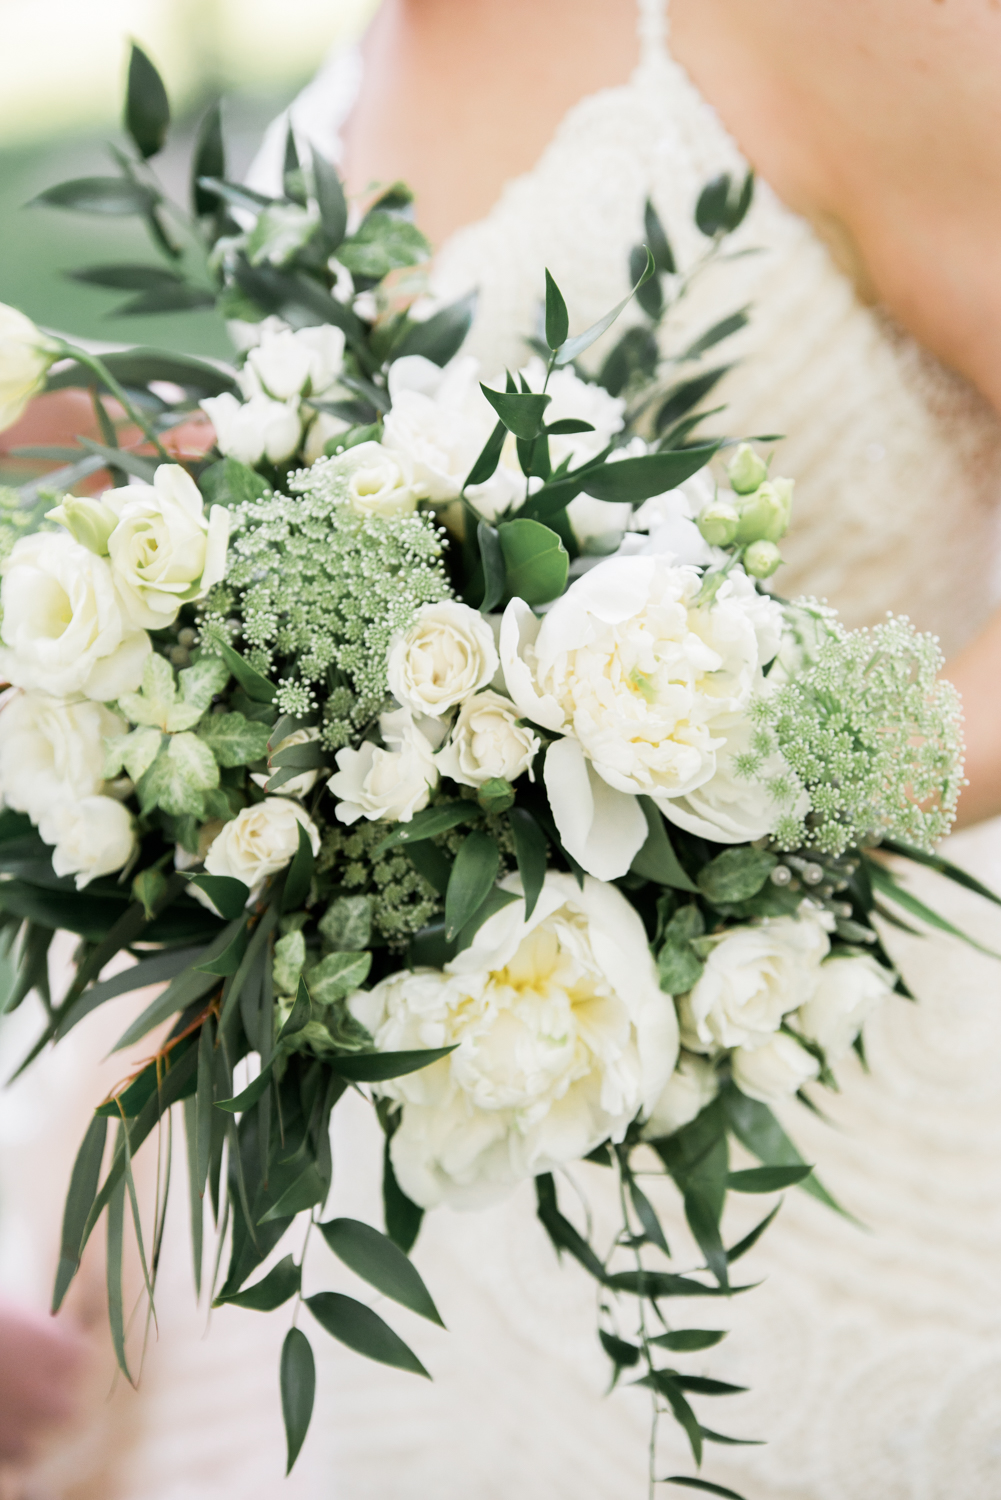 0d7271d8cd33-Close_up_bouquet.jpg